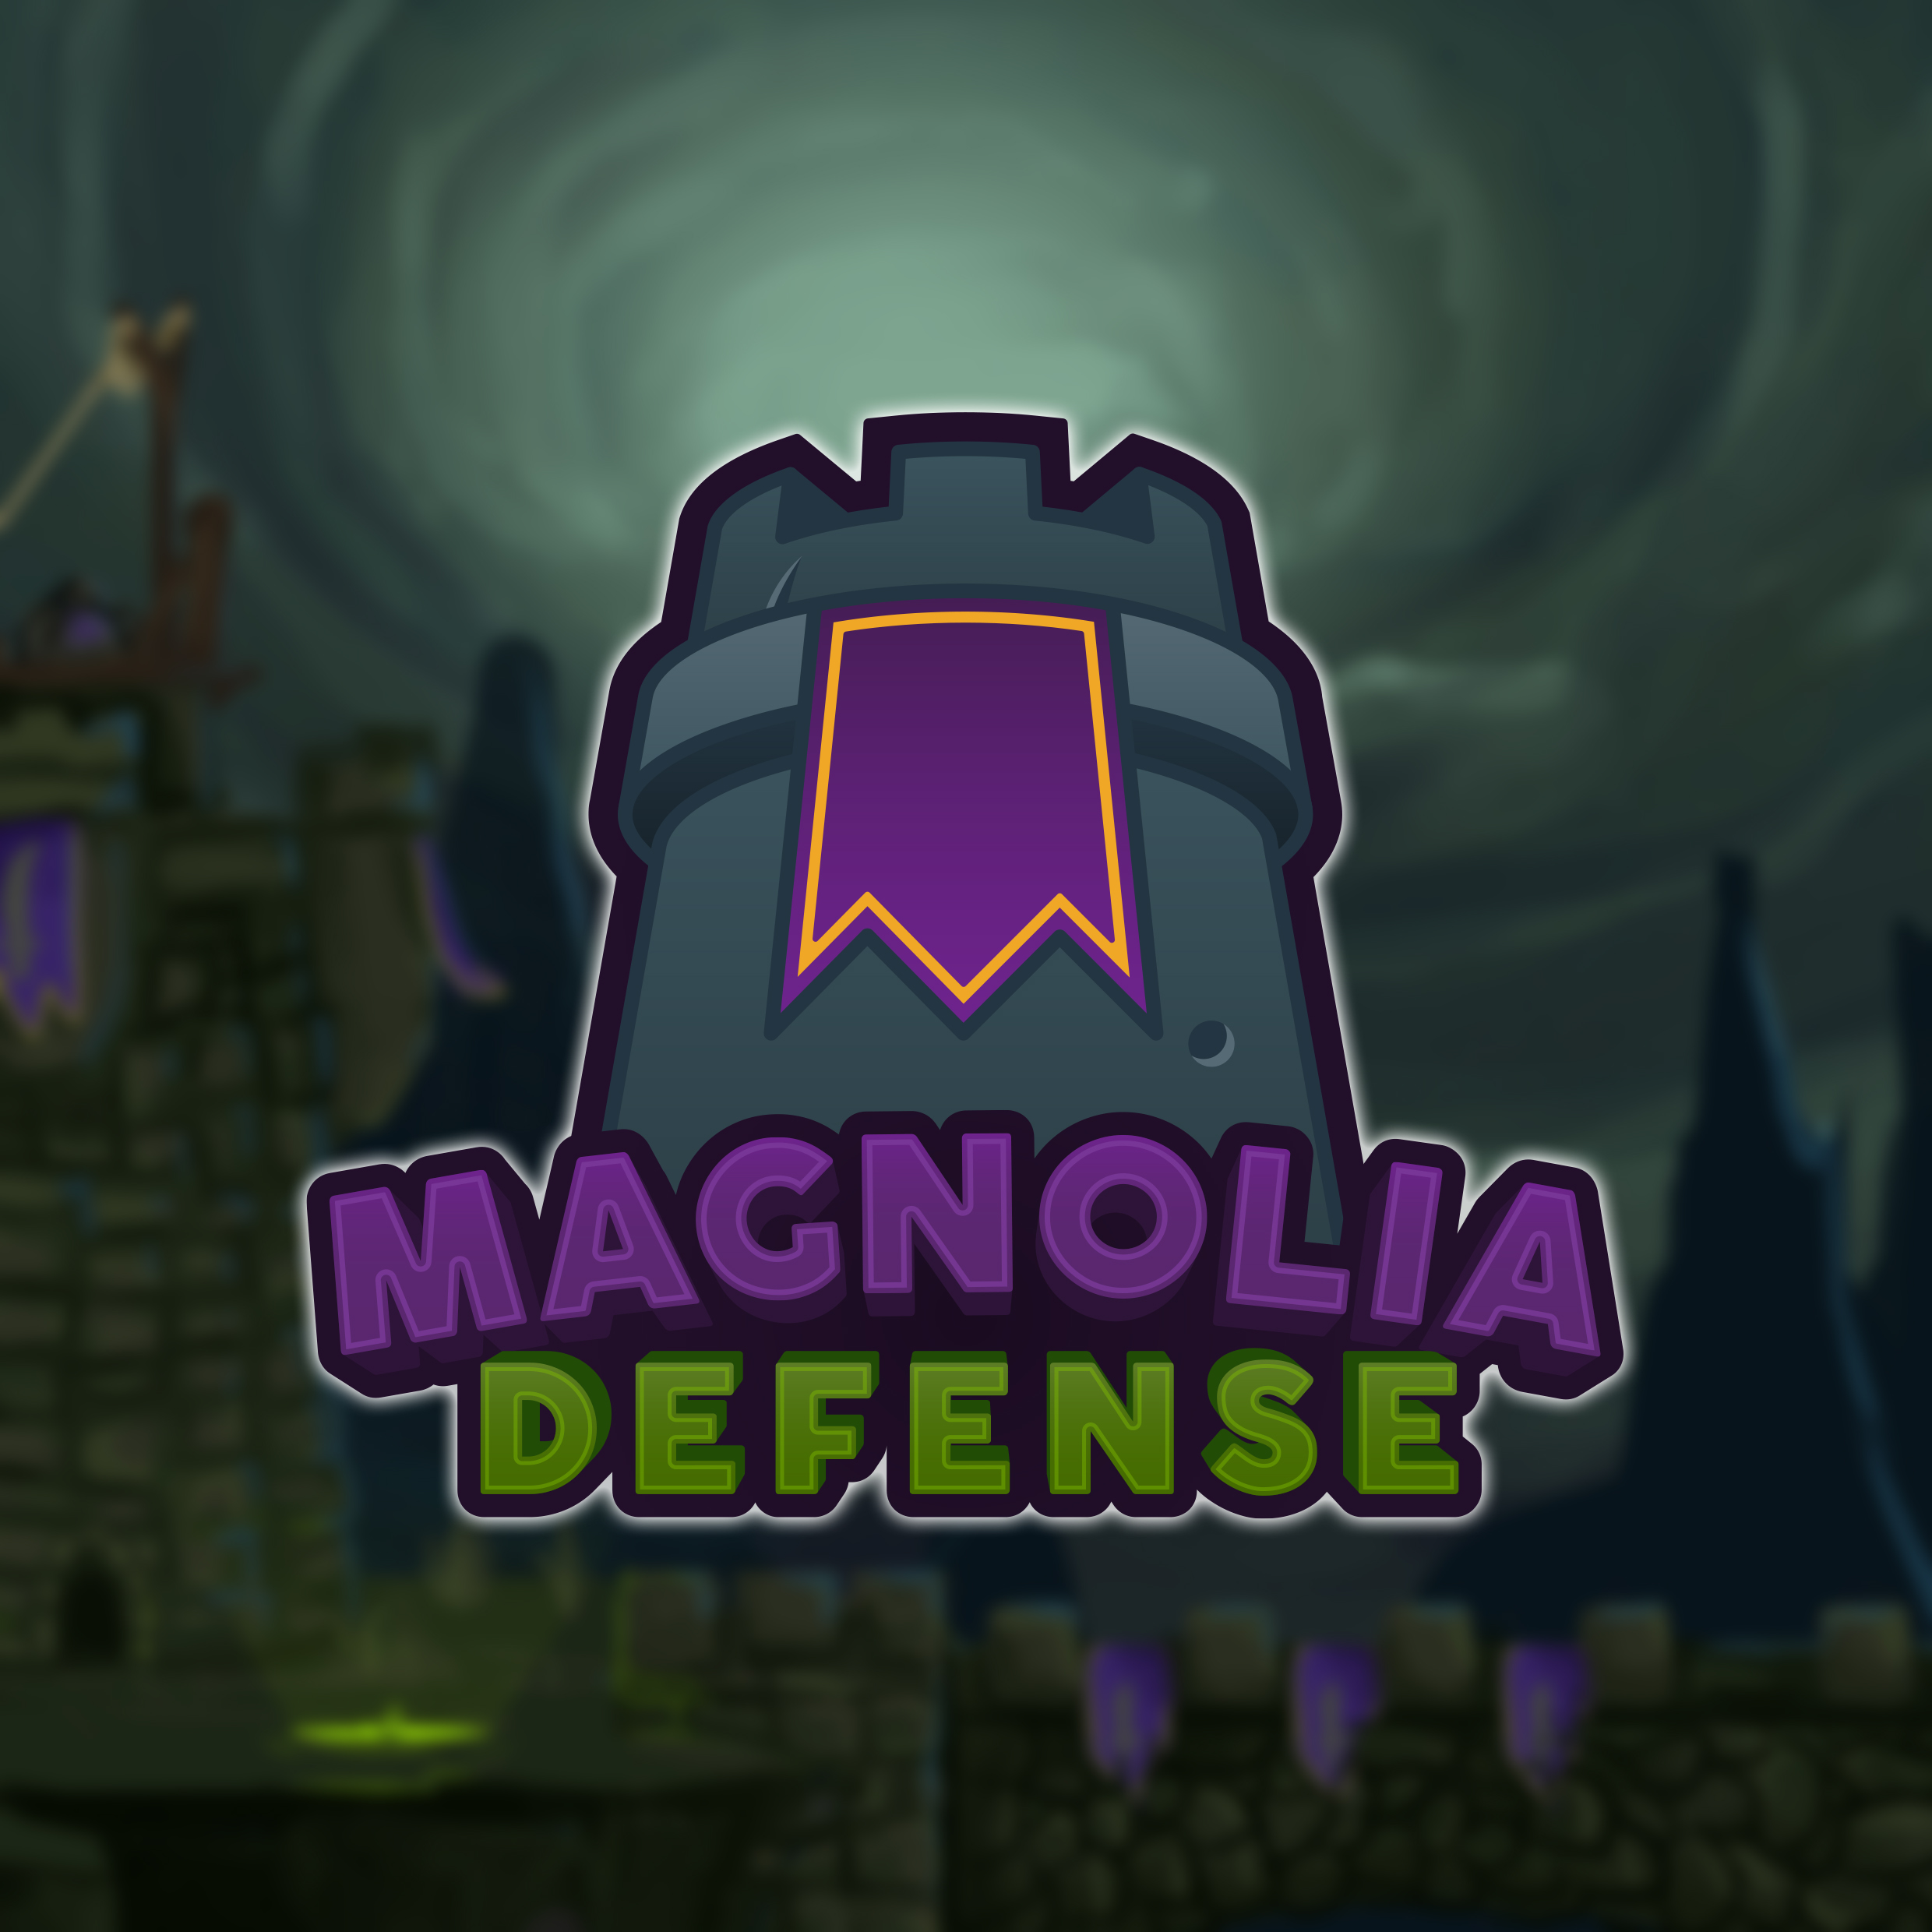 Magnolia Defense